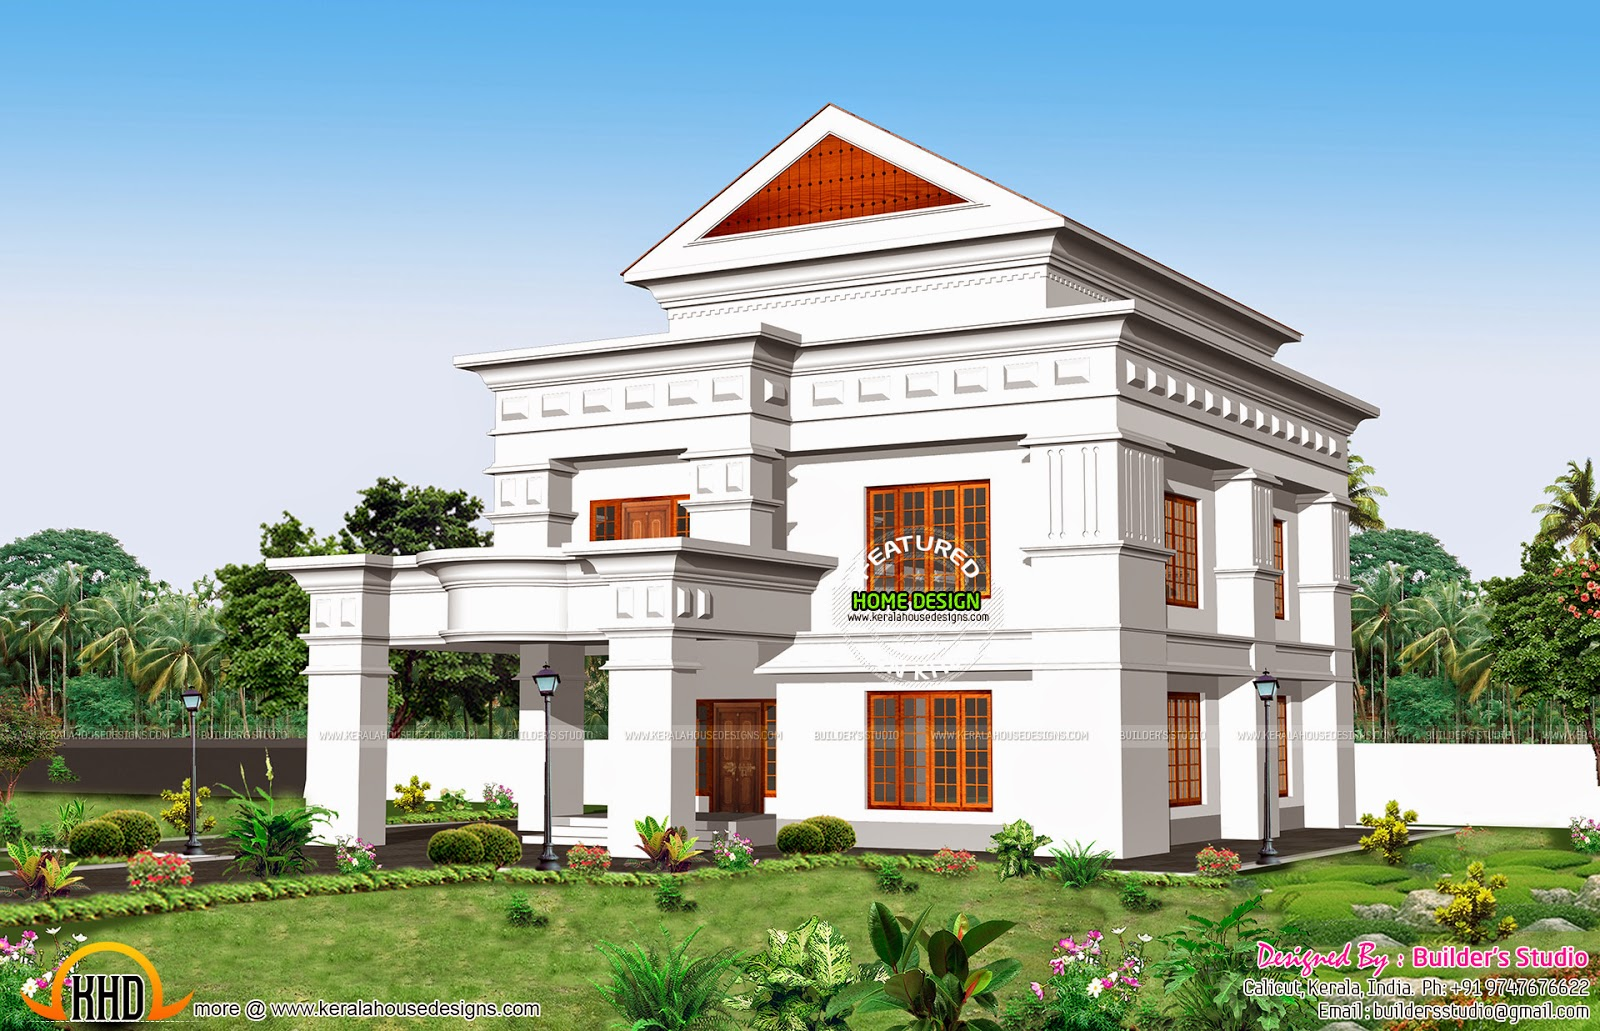 Separate garage house plan keralahousedesigns for Separate garage